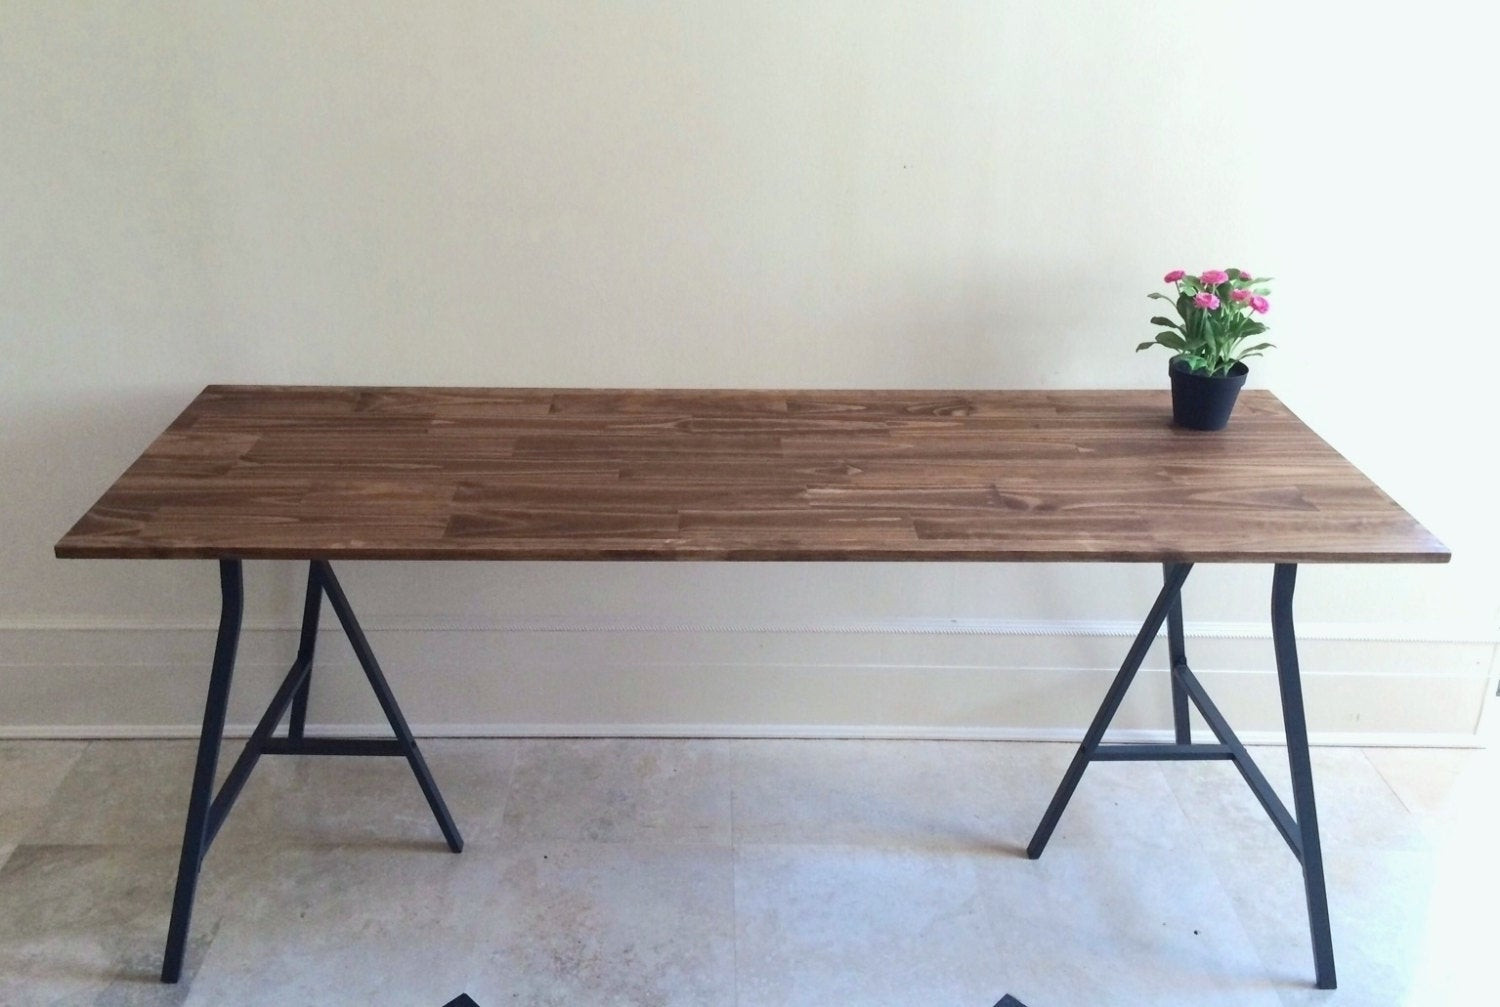 Best ideas about Long Narrow Dining Table . Save or Pin Narrow Long Dining Table Wood Dining Table Rustic by Now.